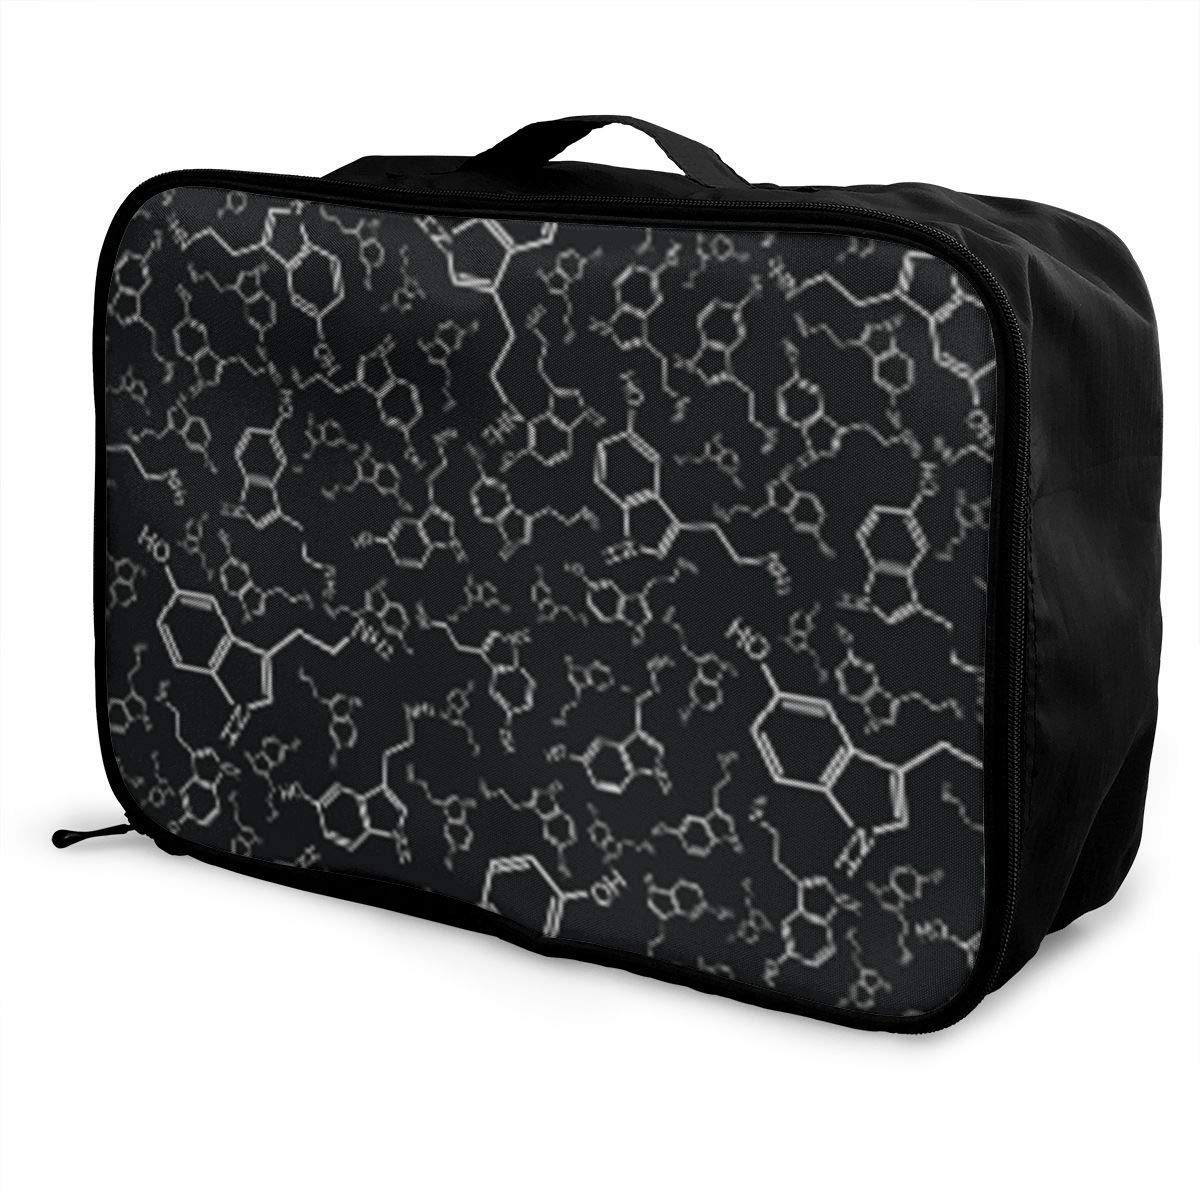 Portable Luggage Duffel Bag Serotonin Black Gray Travel Bags Carry-on in Trolley Handle JTRVW Luggage Bags for Travel